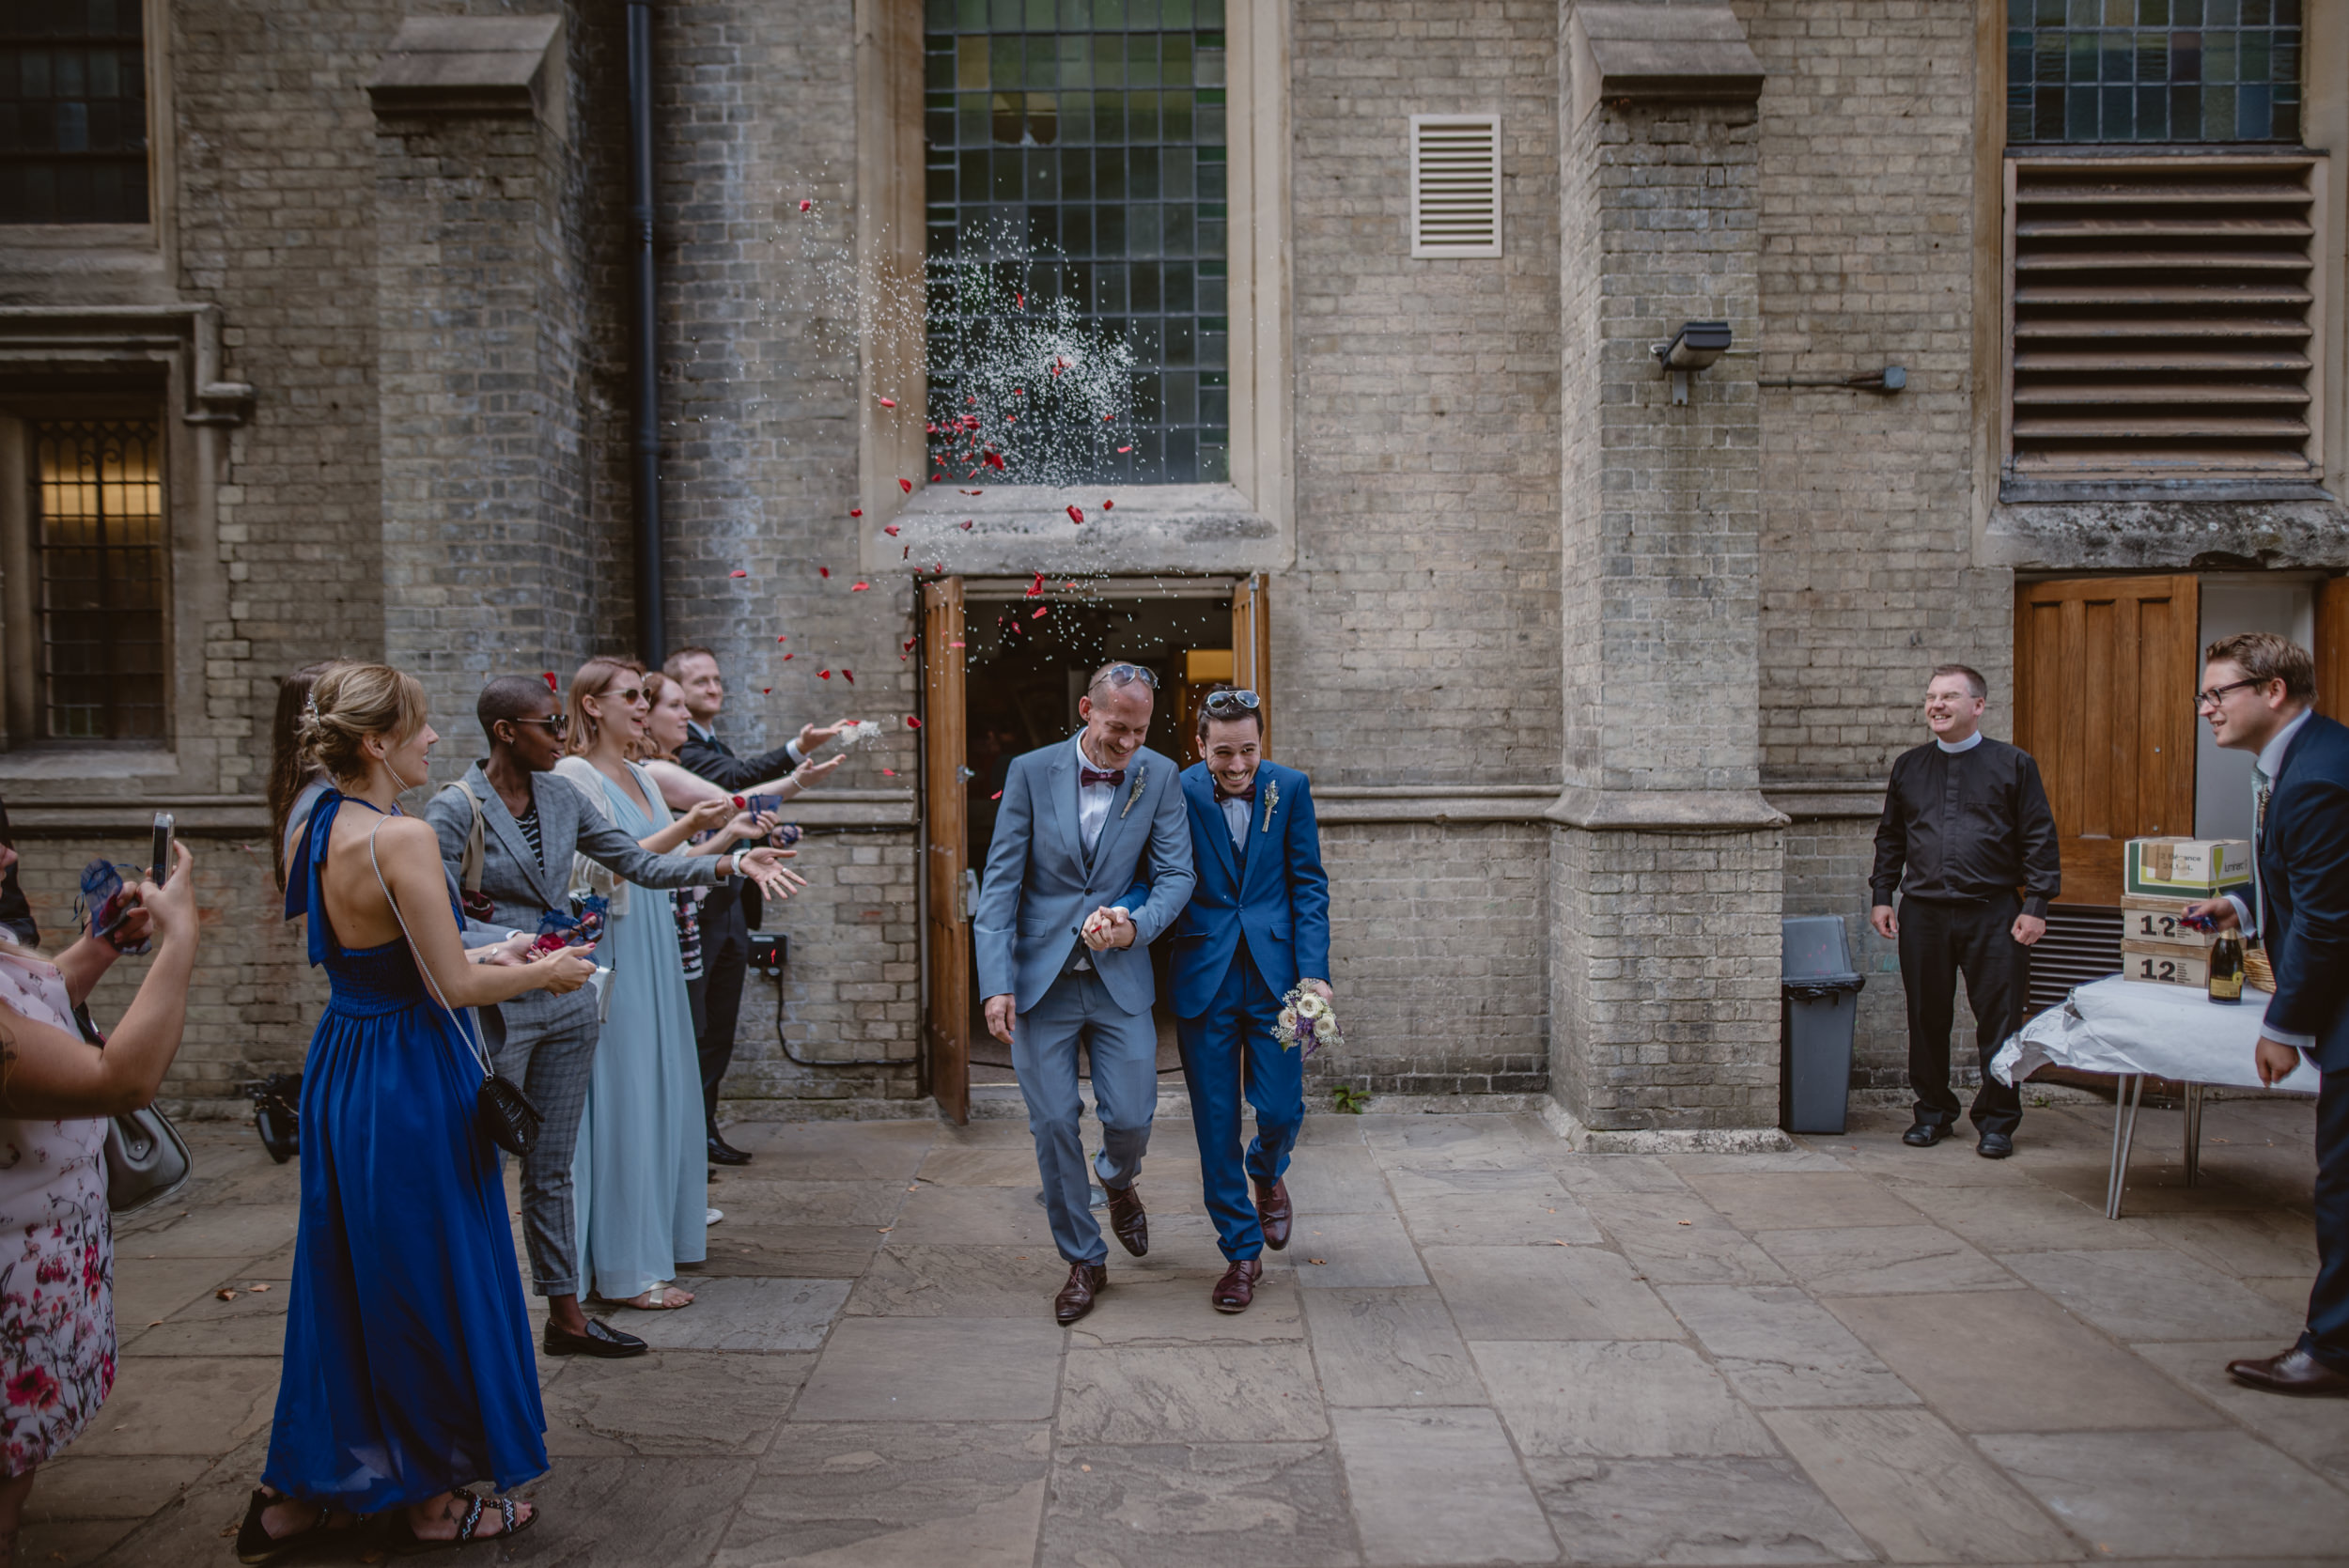 Rhys-and-Alex-Wedding-in-London-Manu-Mendoza-Wedding-Photography-311.jpg